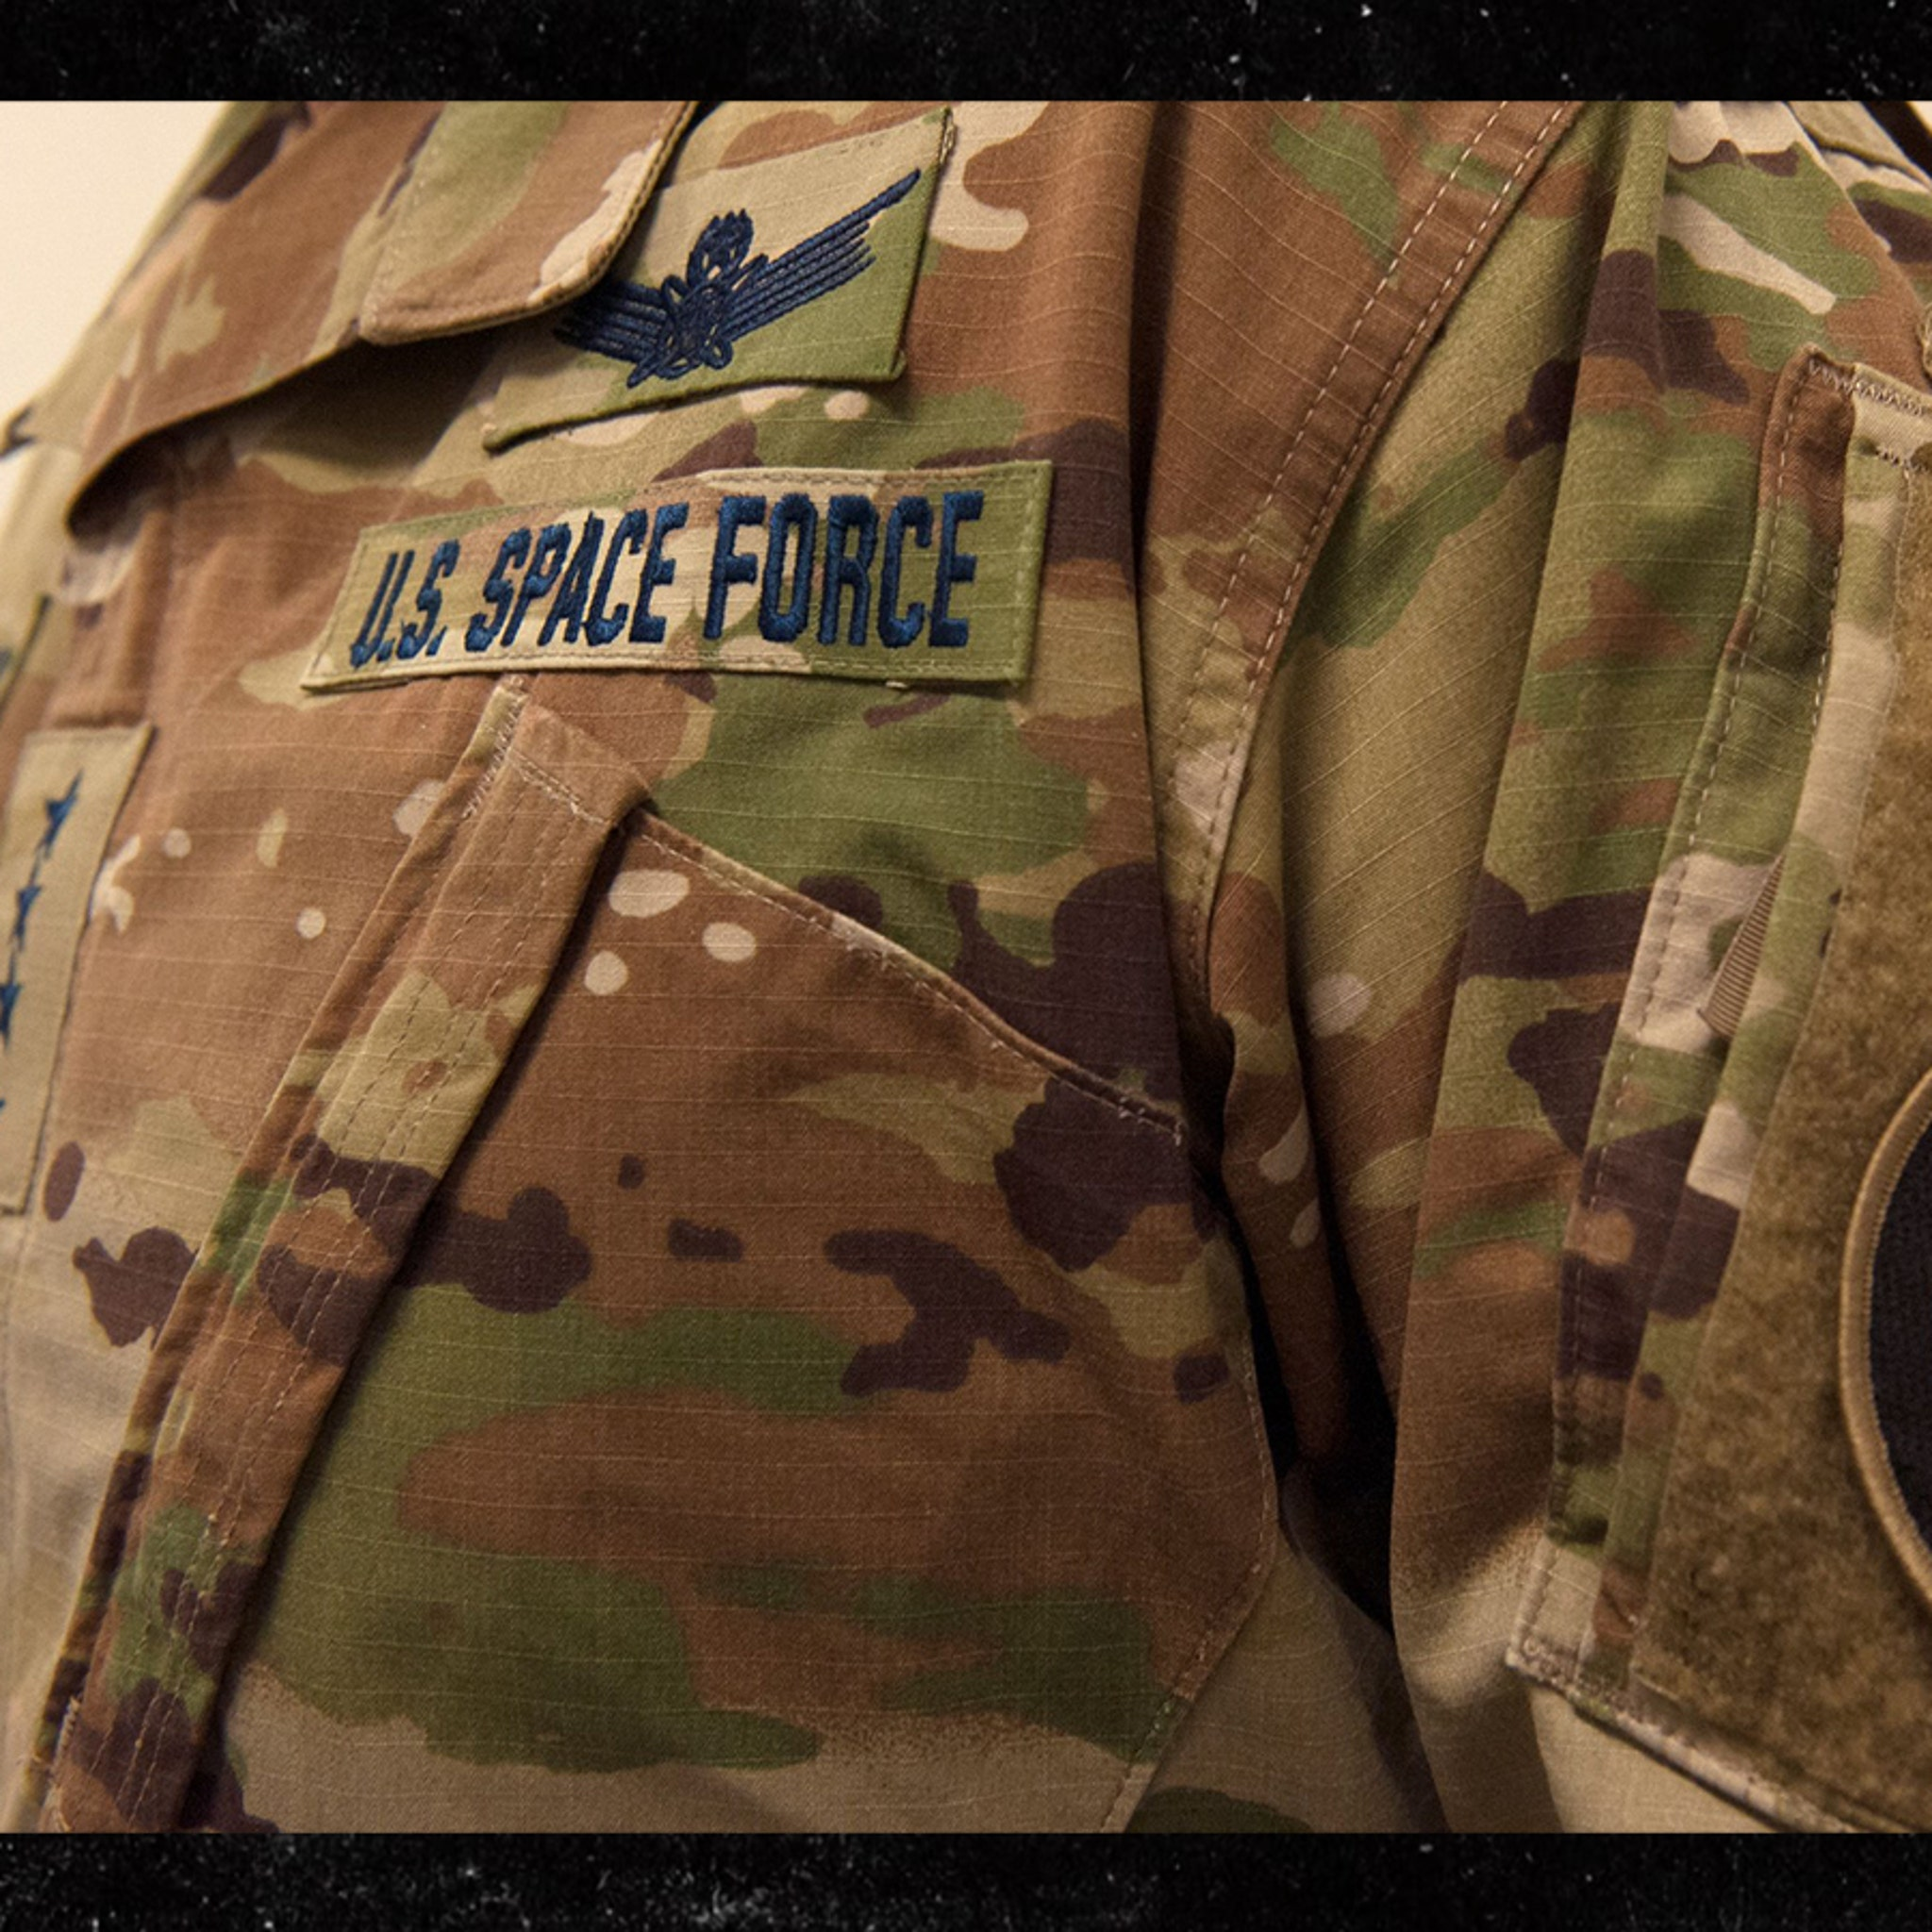 Space Force Reveals First Uniform and They Might Need a Redesign